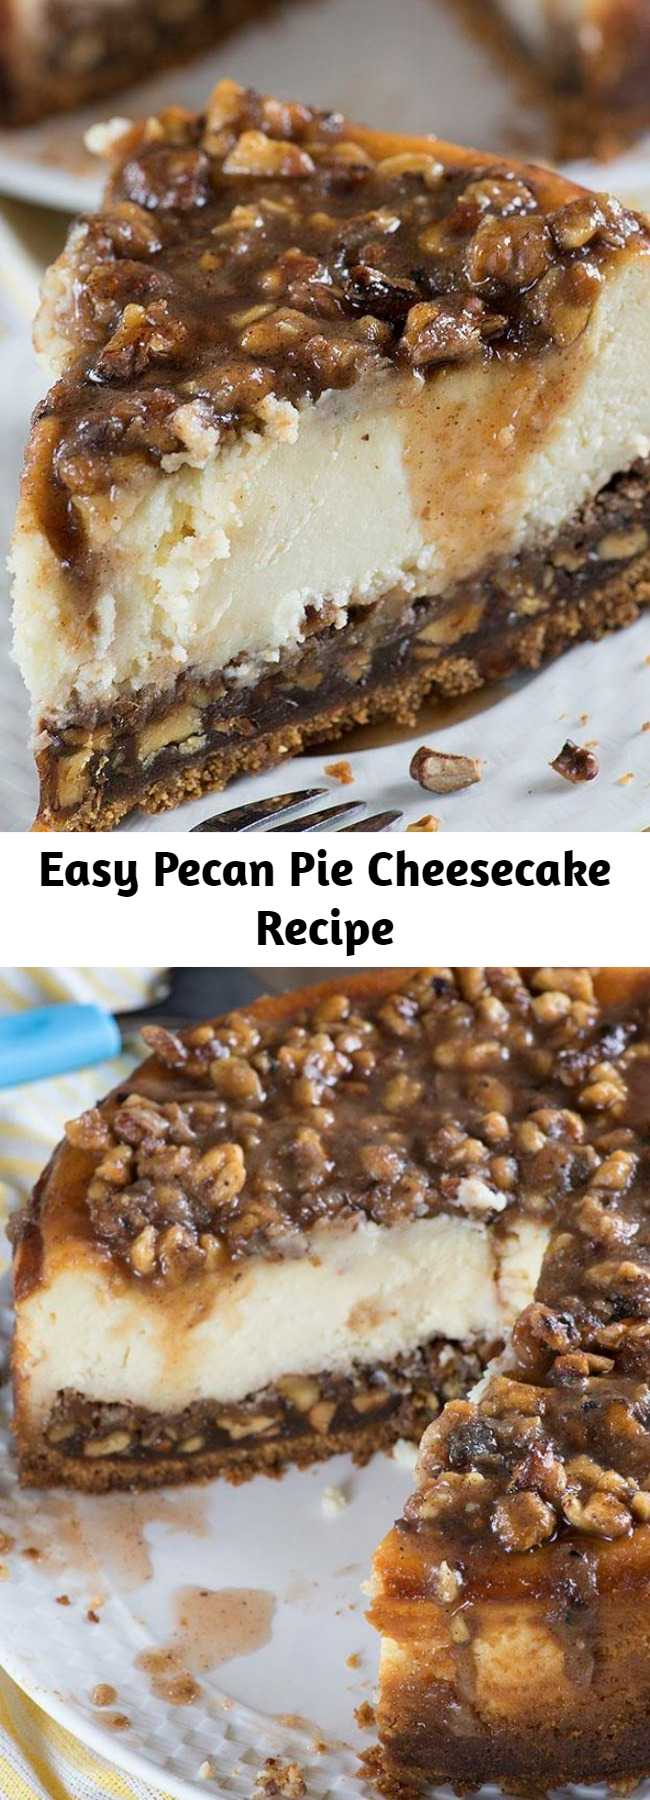 Easy Pecan Pie Cheesecake Recipe - This dreamy Pecan Pie Cheesecake is the perfect Thanksgiving treat. A combination of classic pecan pie and creamy cheesecake makes a tasty twist of two traditional treats!